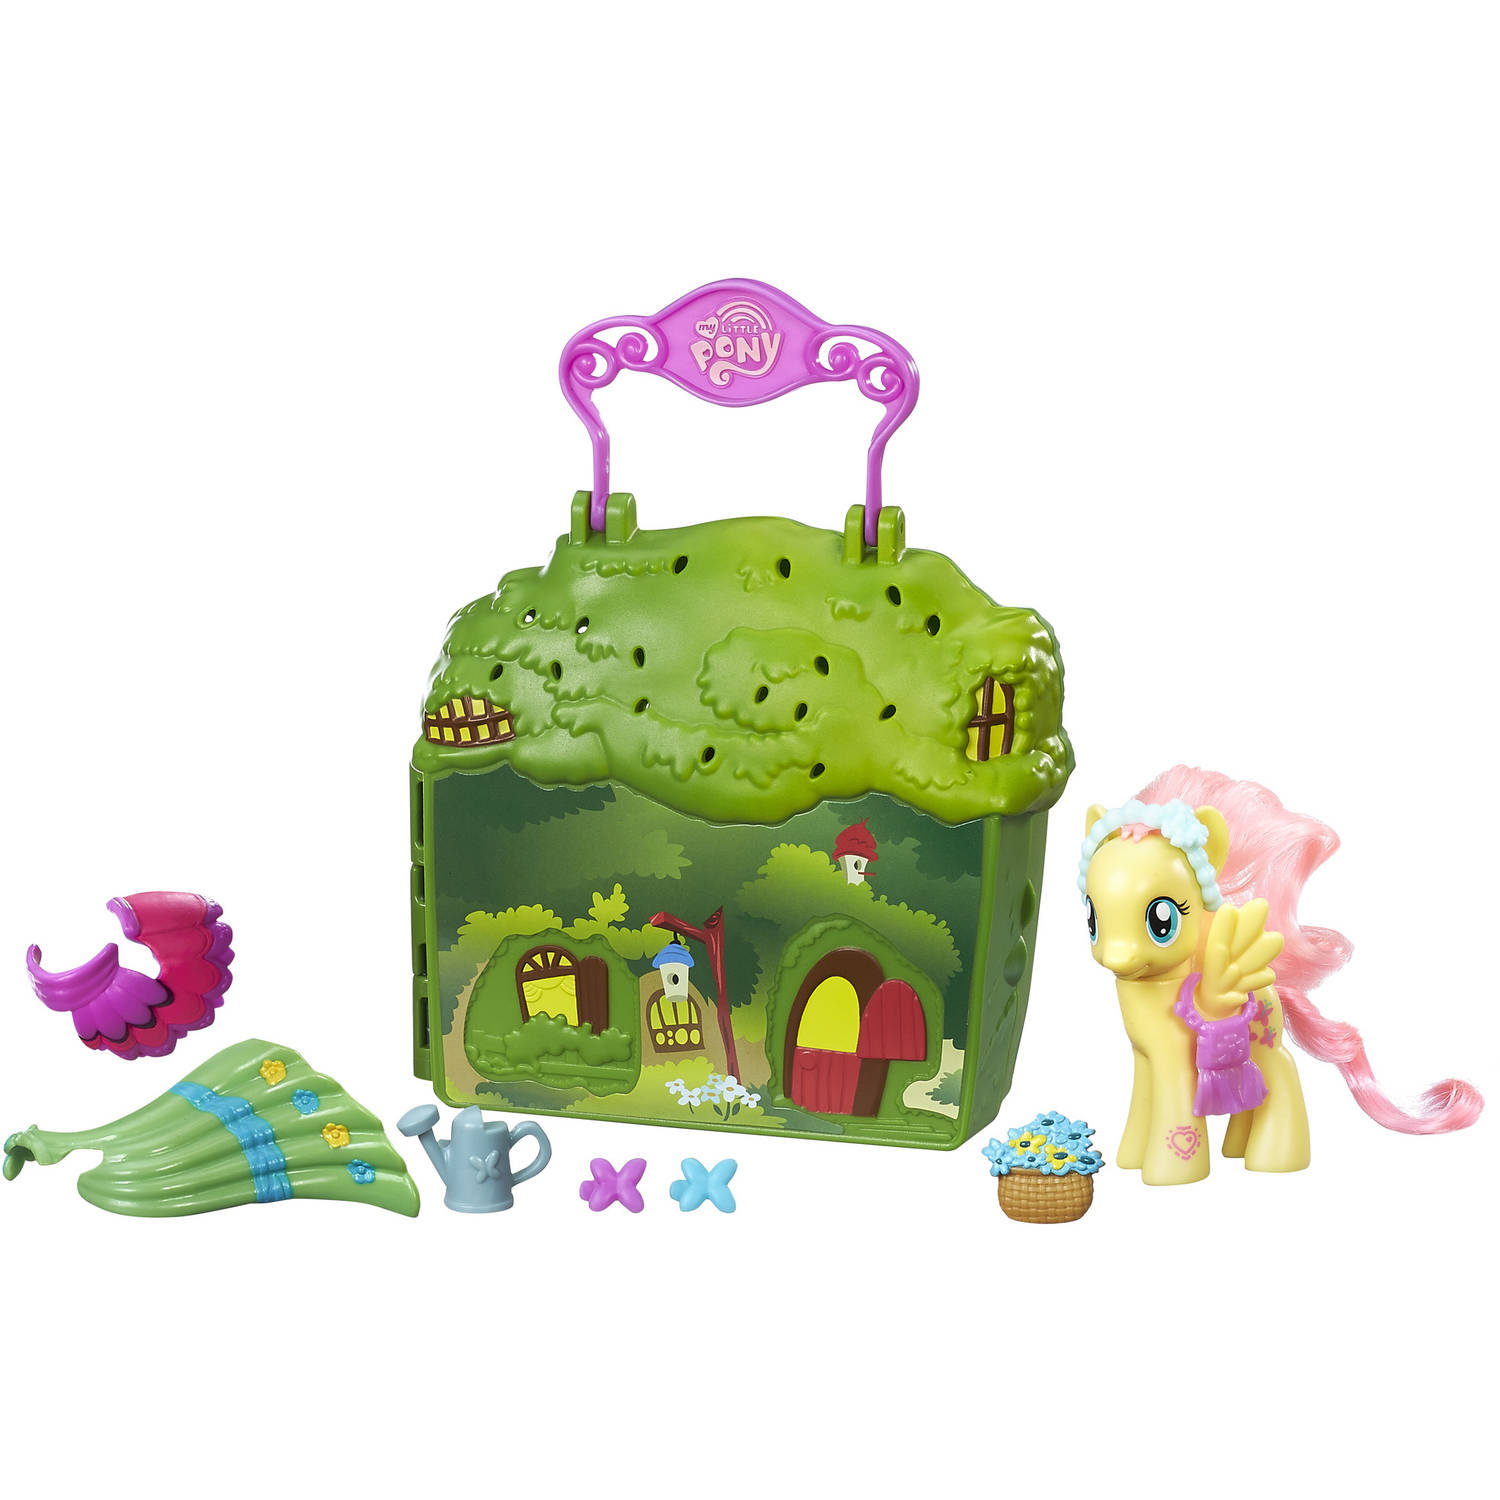 My Little Pony Friendship is Magic Fluttershy Cottage Playset by Hasbro